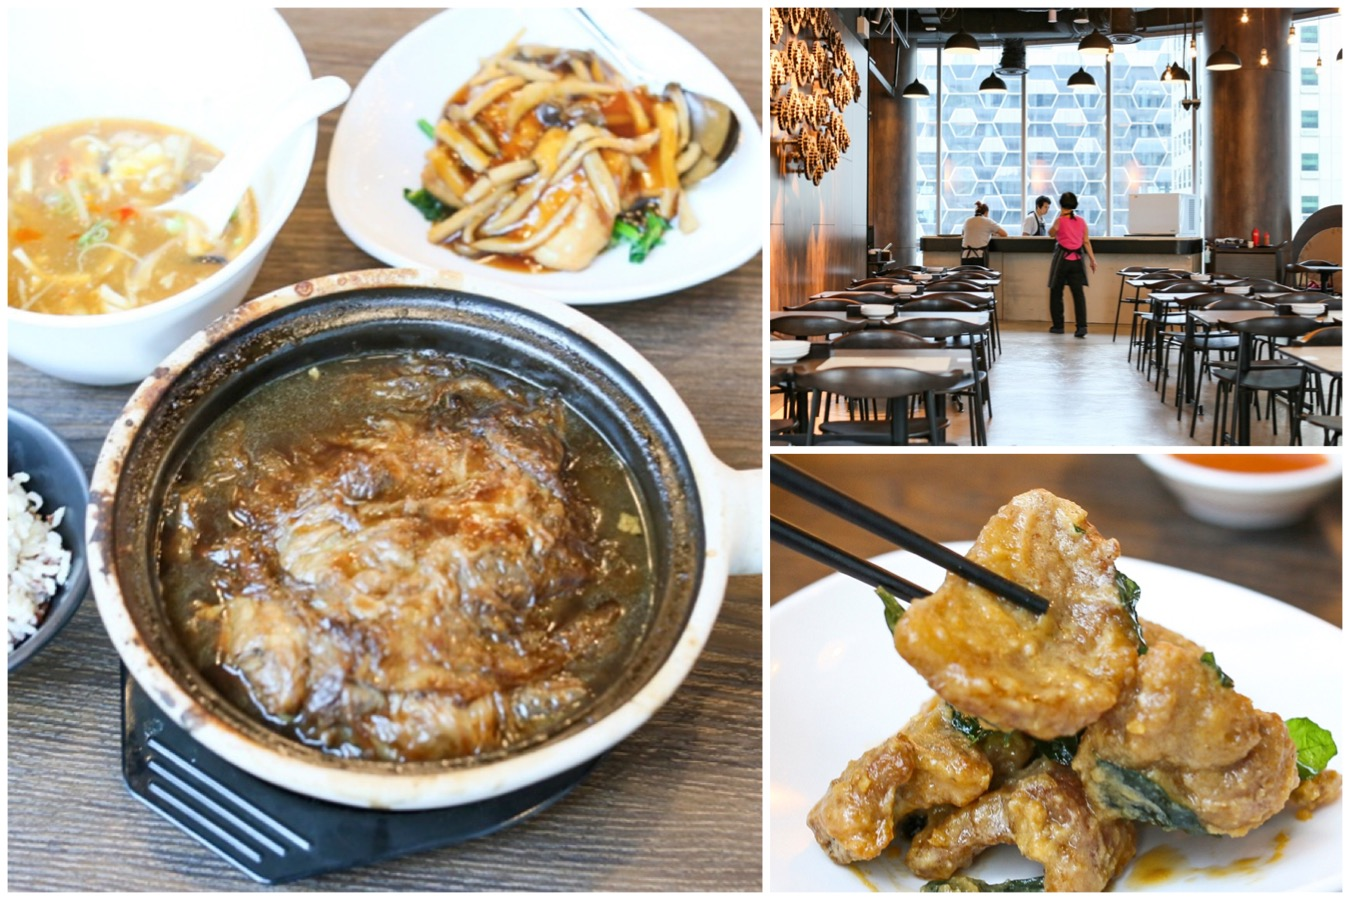 Myo Restobar - Cantonese Home-Style Dishes In The CBD, Known For The Kia Hiang Claypot Spring Chicken